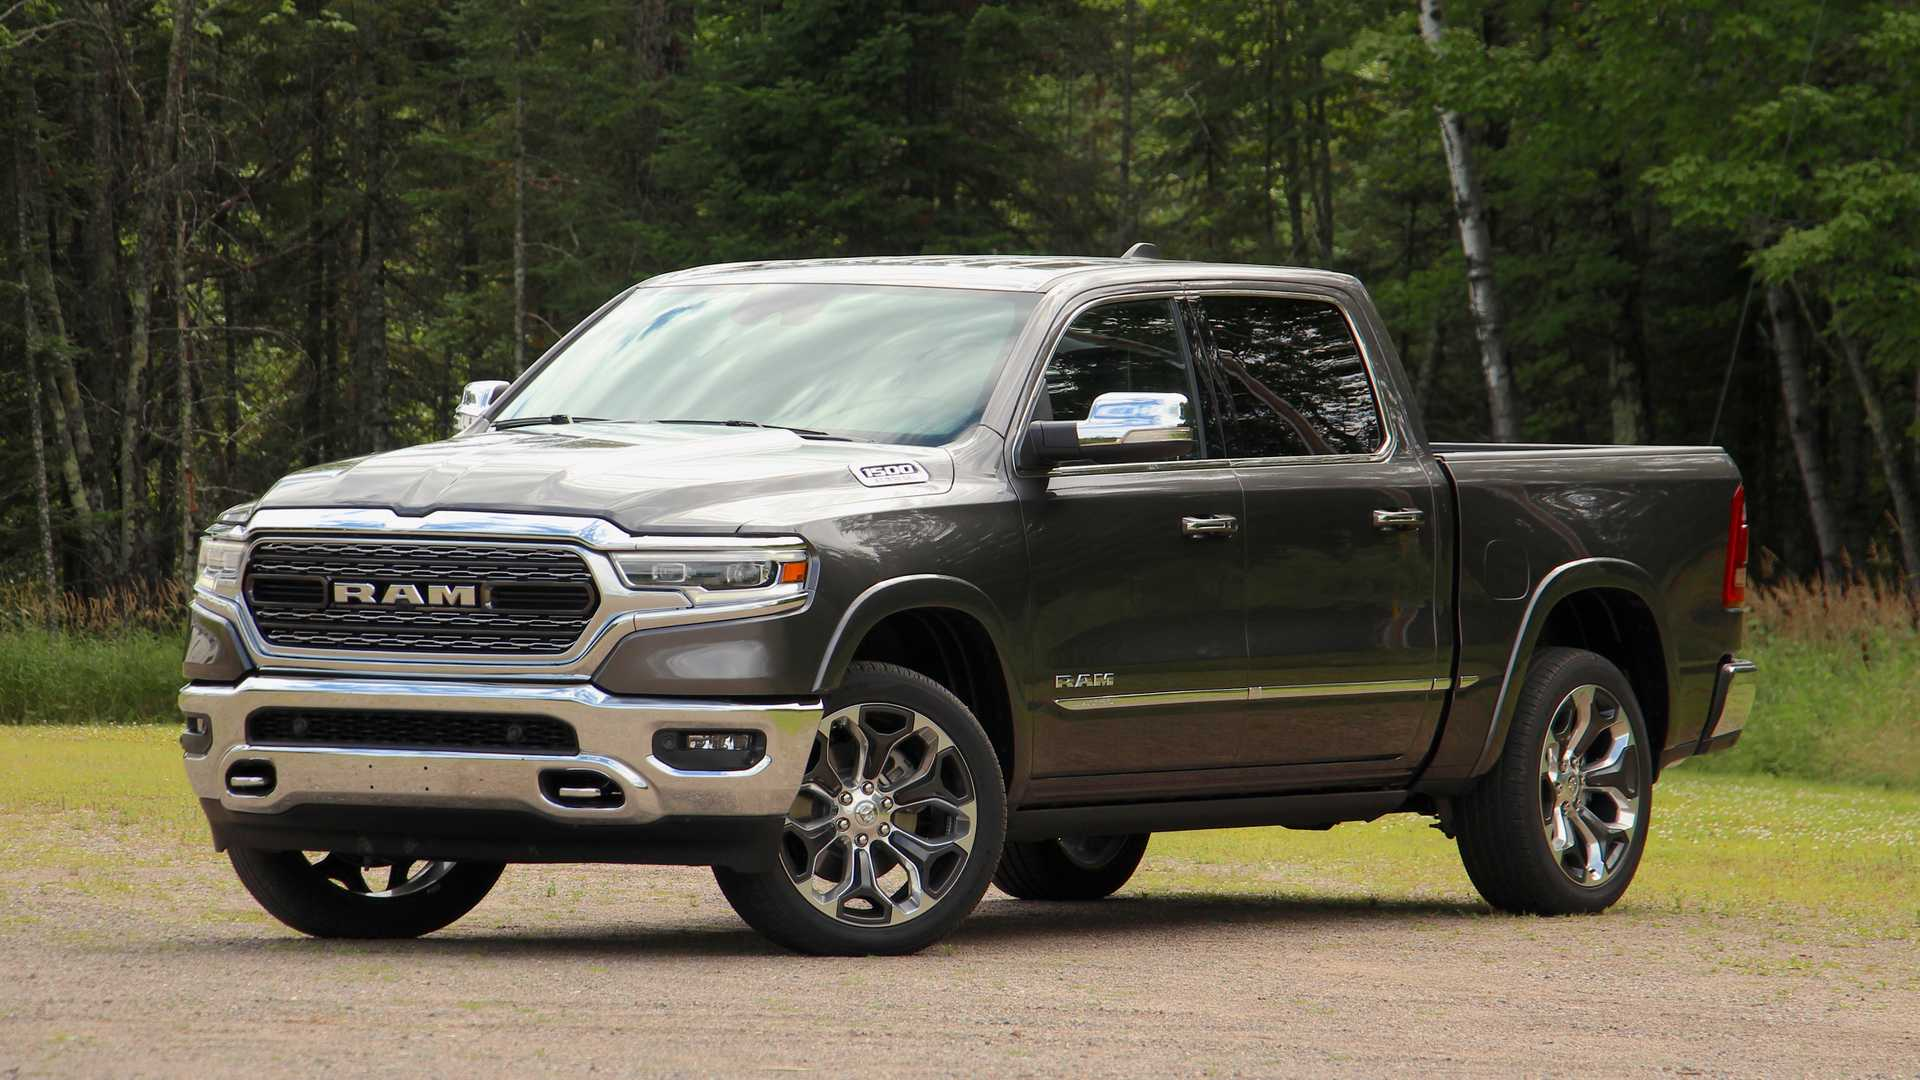 92 Concept of 2020 Dodge Ram Ecodiesel Configurations for 2020 Dodge Ram Ecodiesel